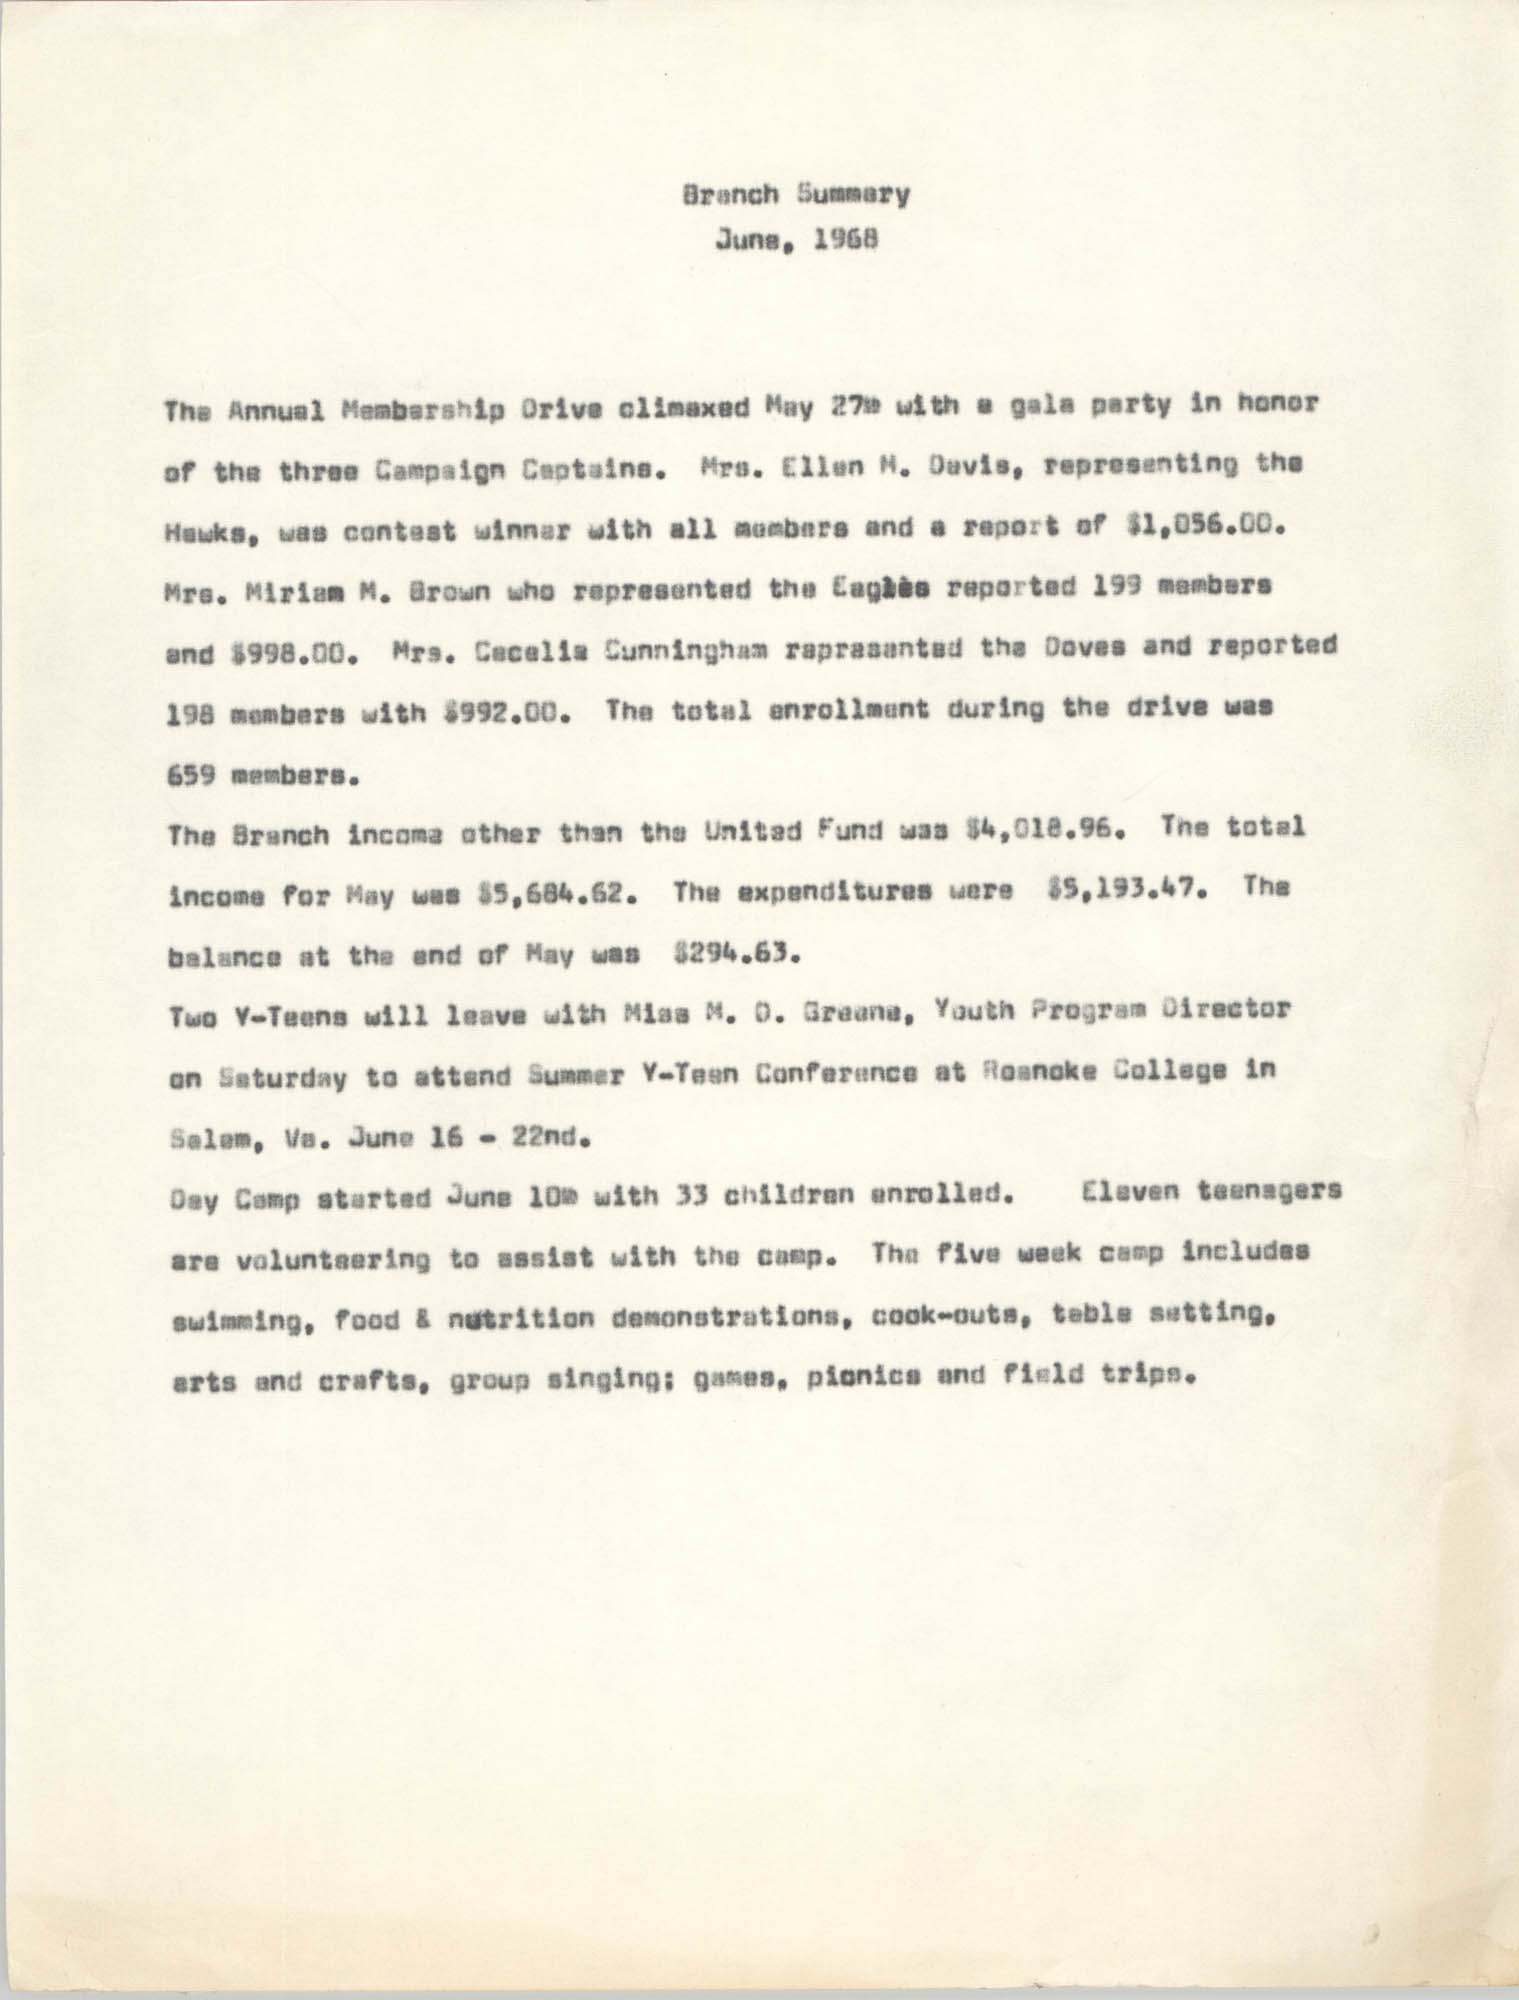 Coming Street Y.W.C.A. Summary Report, June 1968